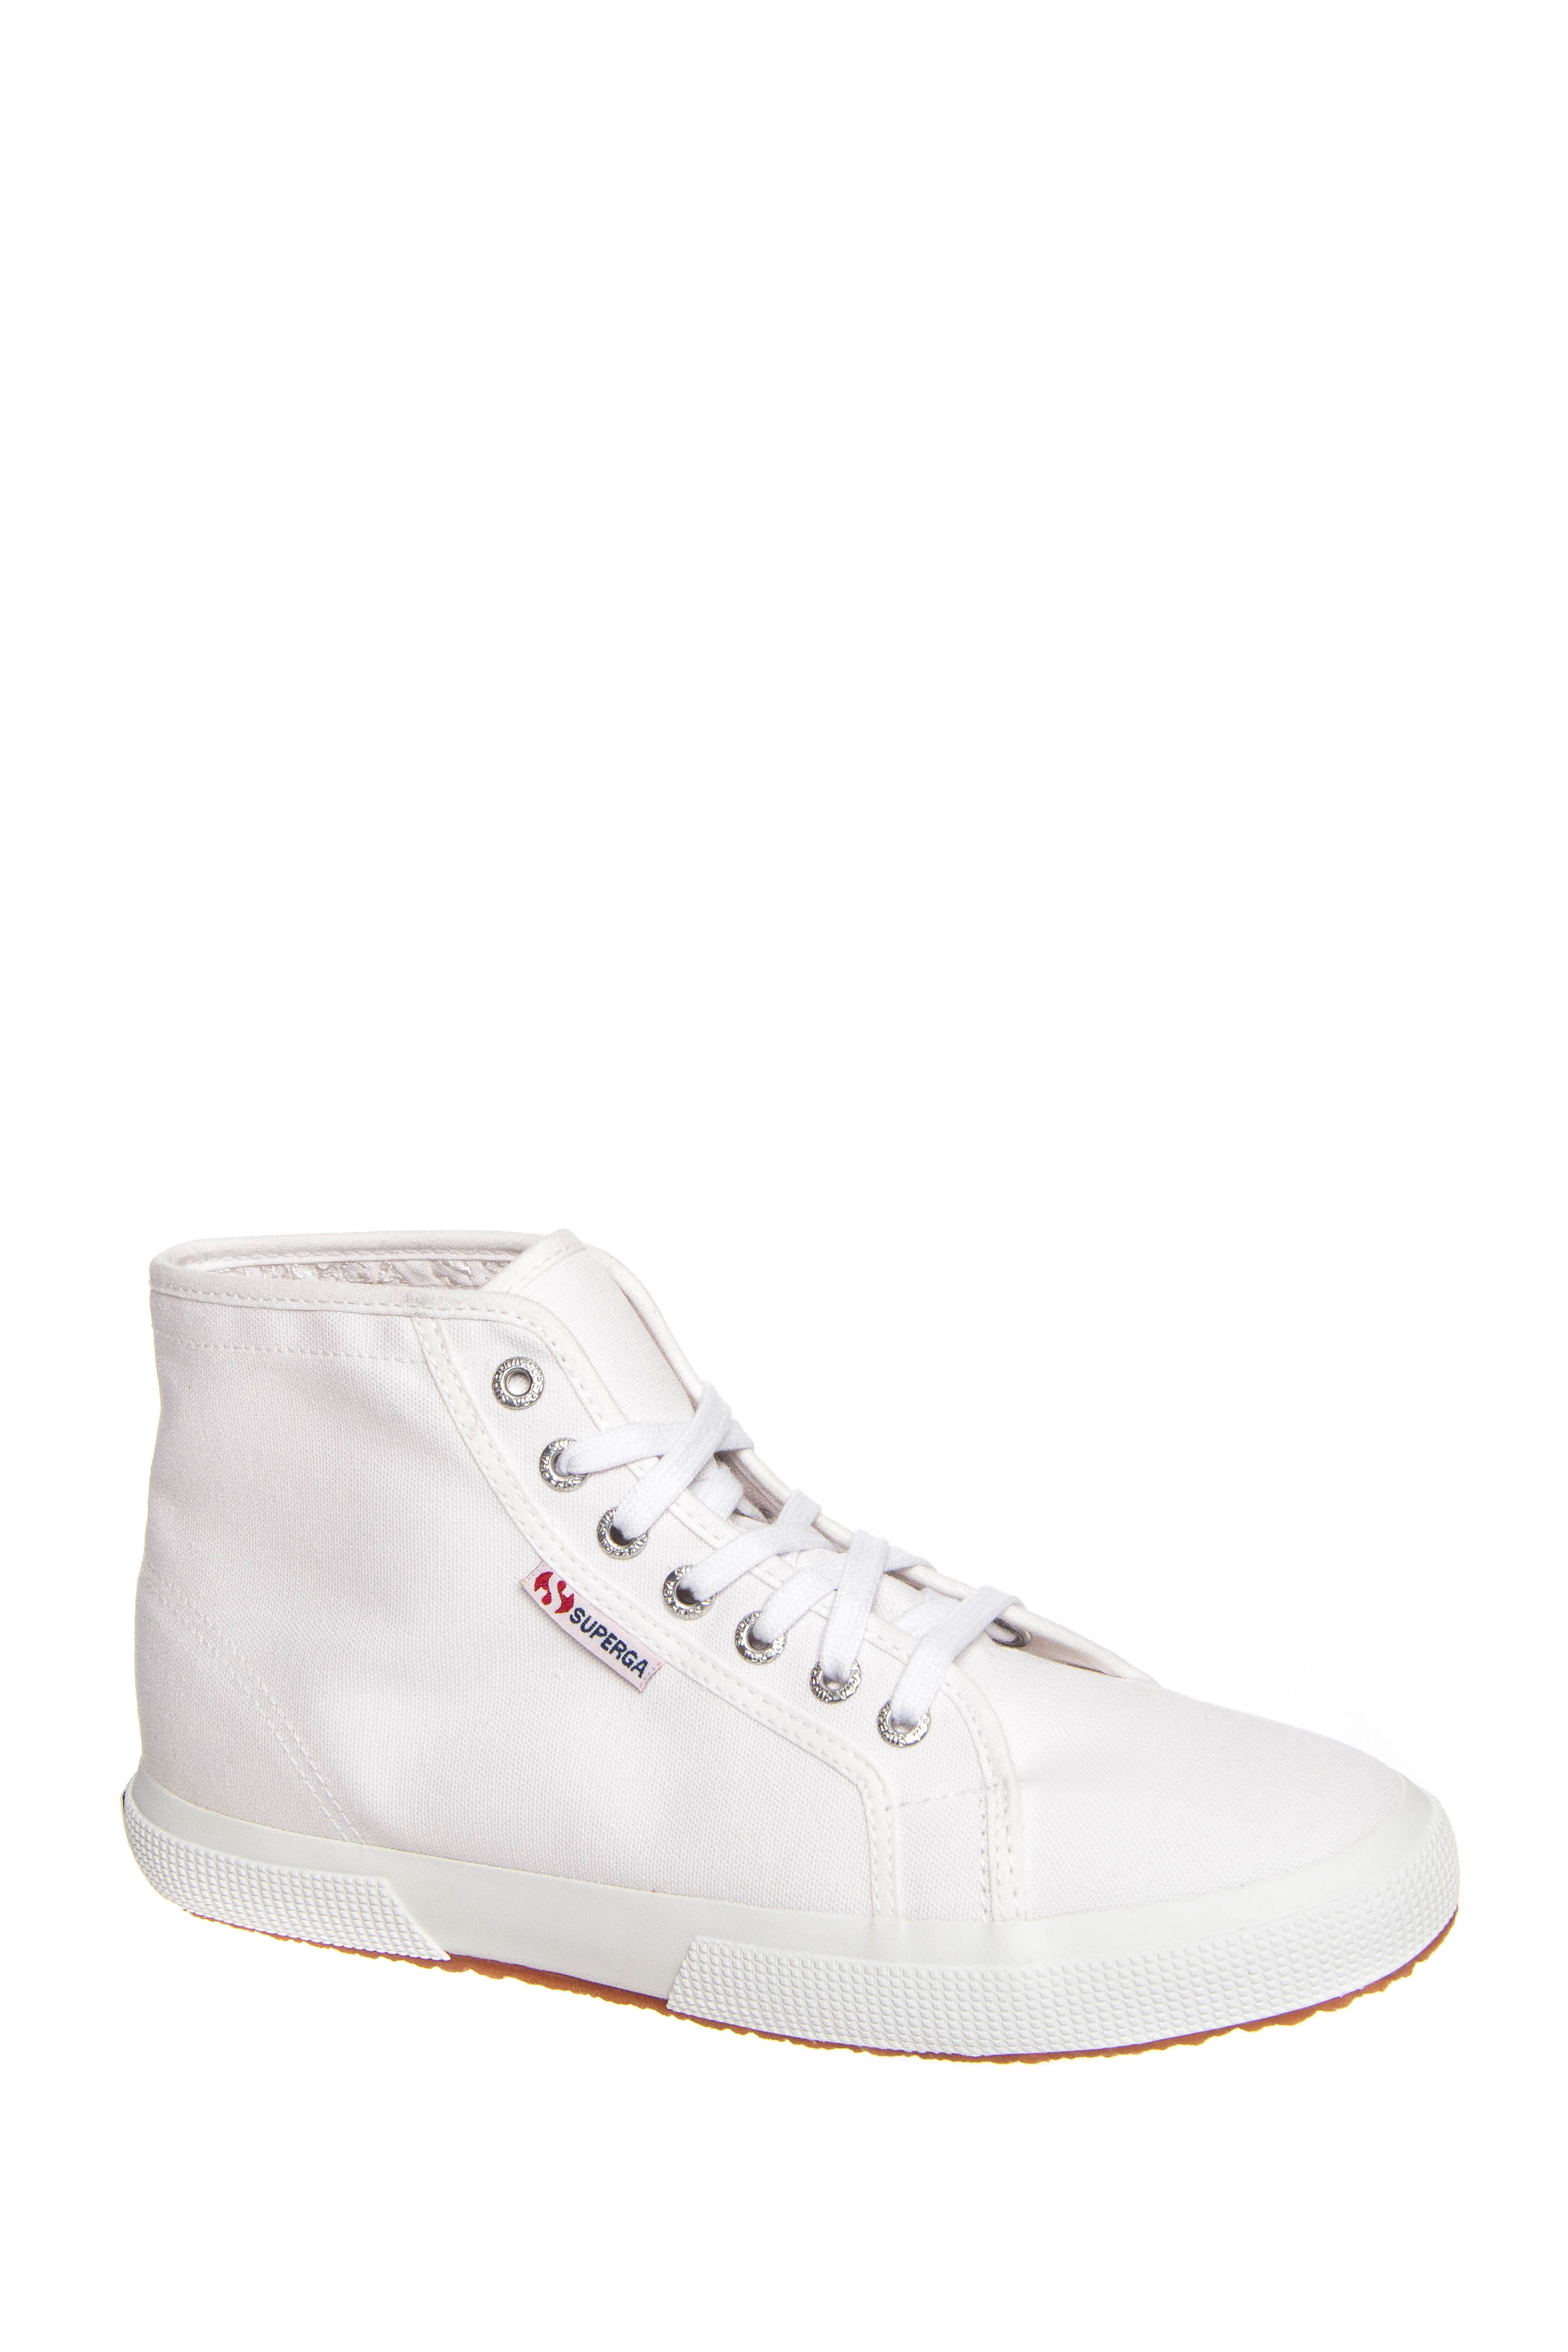 Superga Cotu High Top Sneakers - White